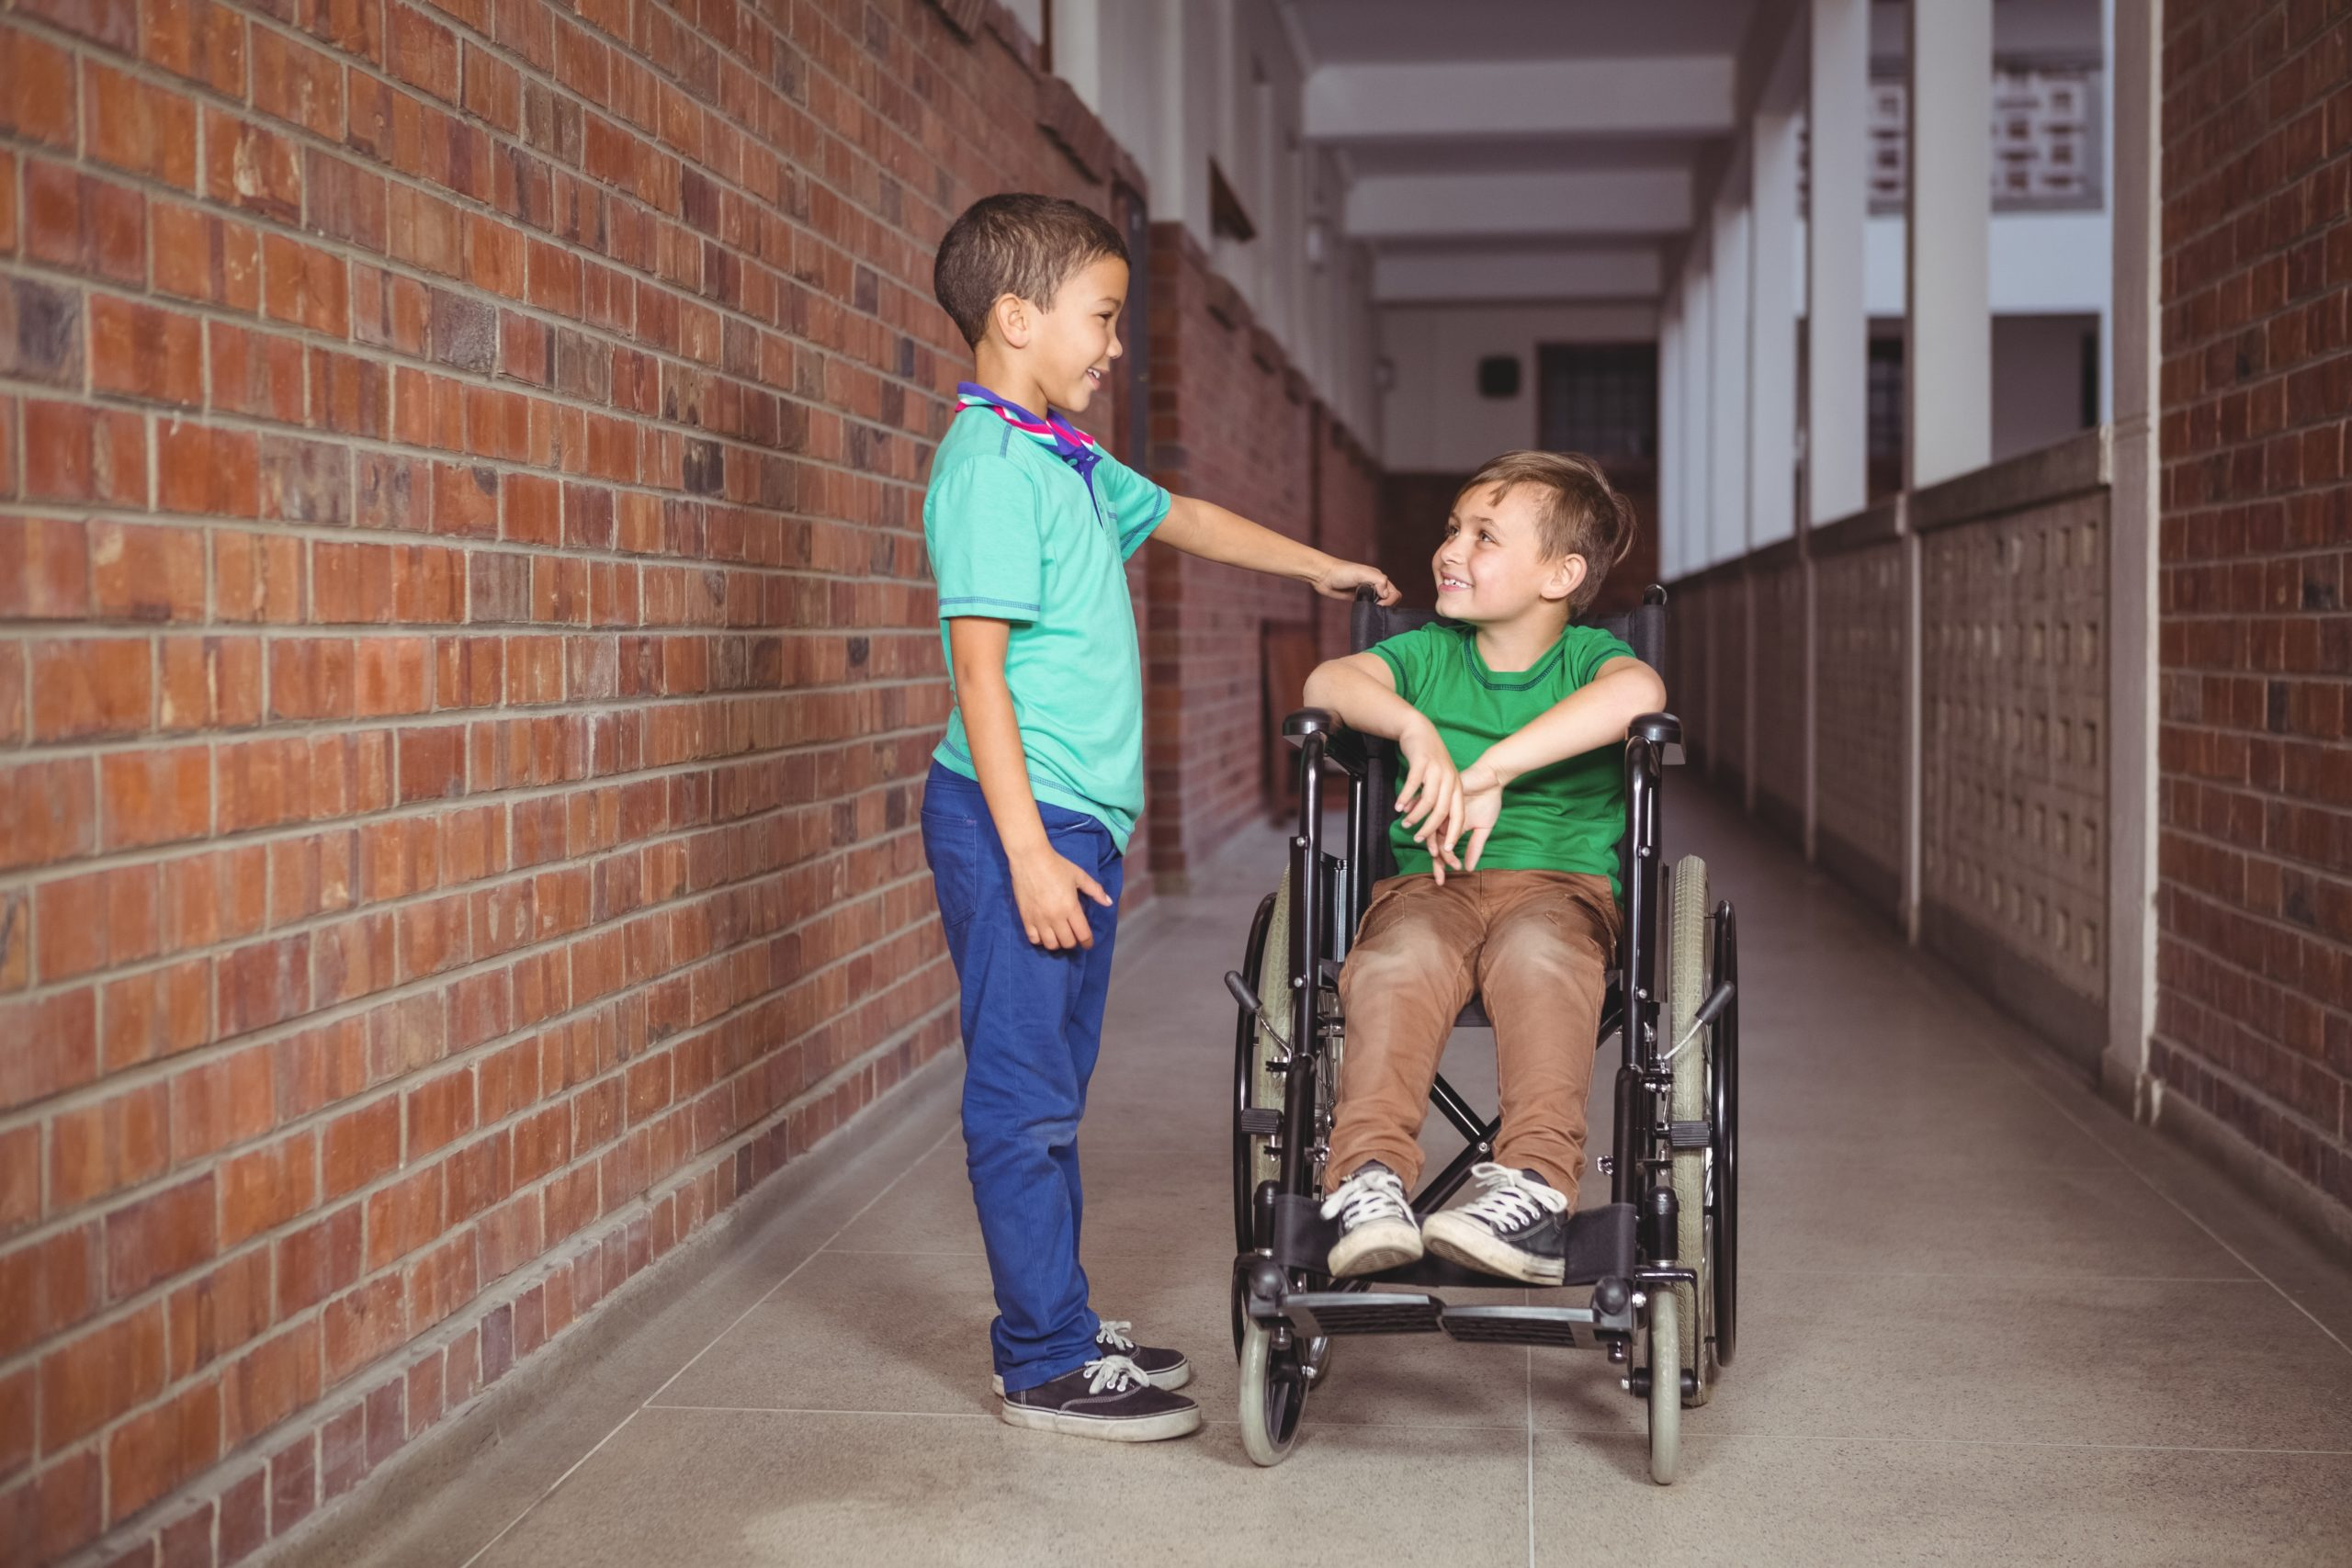 Boy in Wheelchair talks to friend in a school hallway